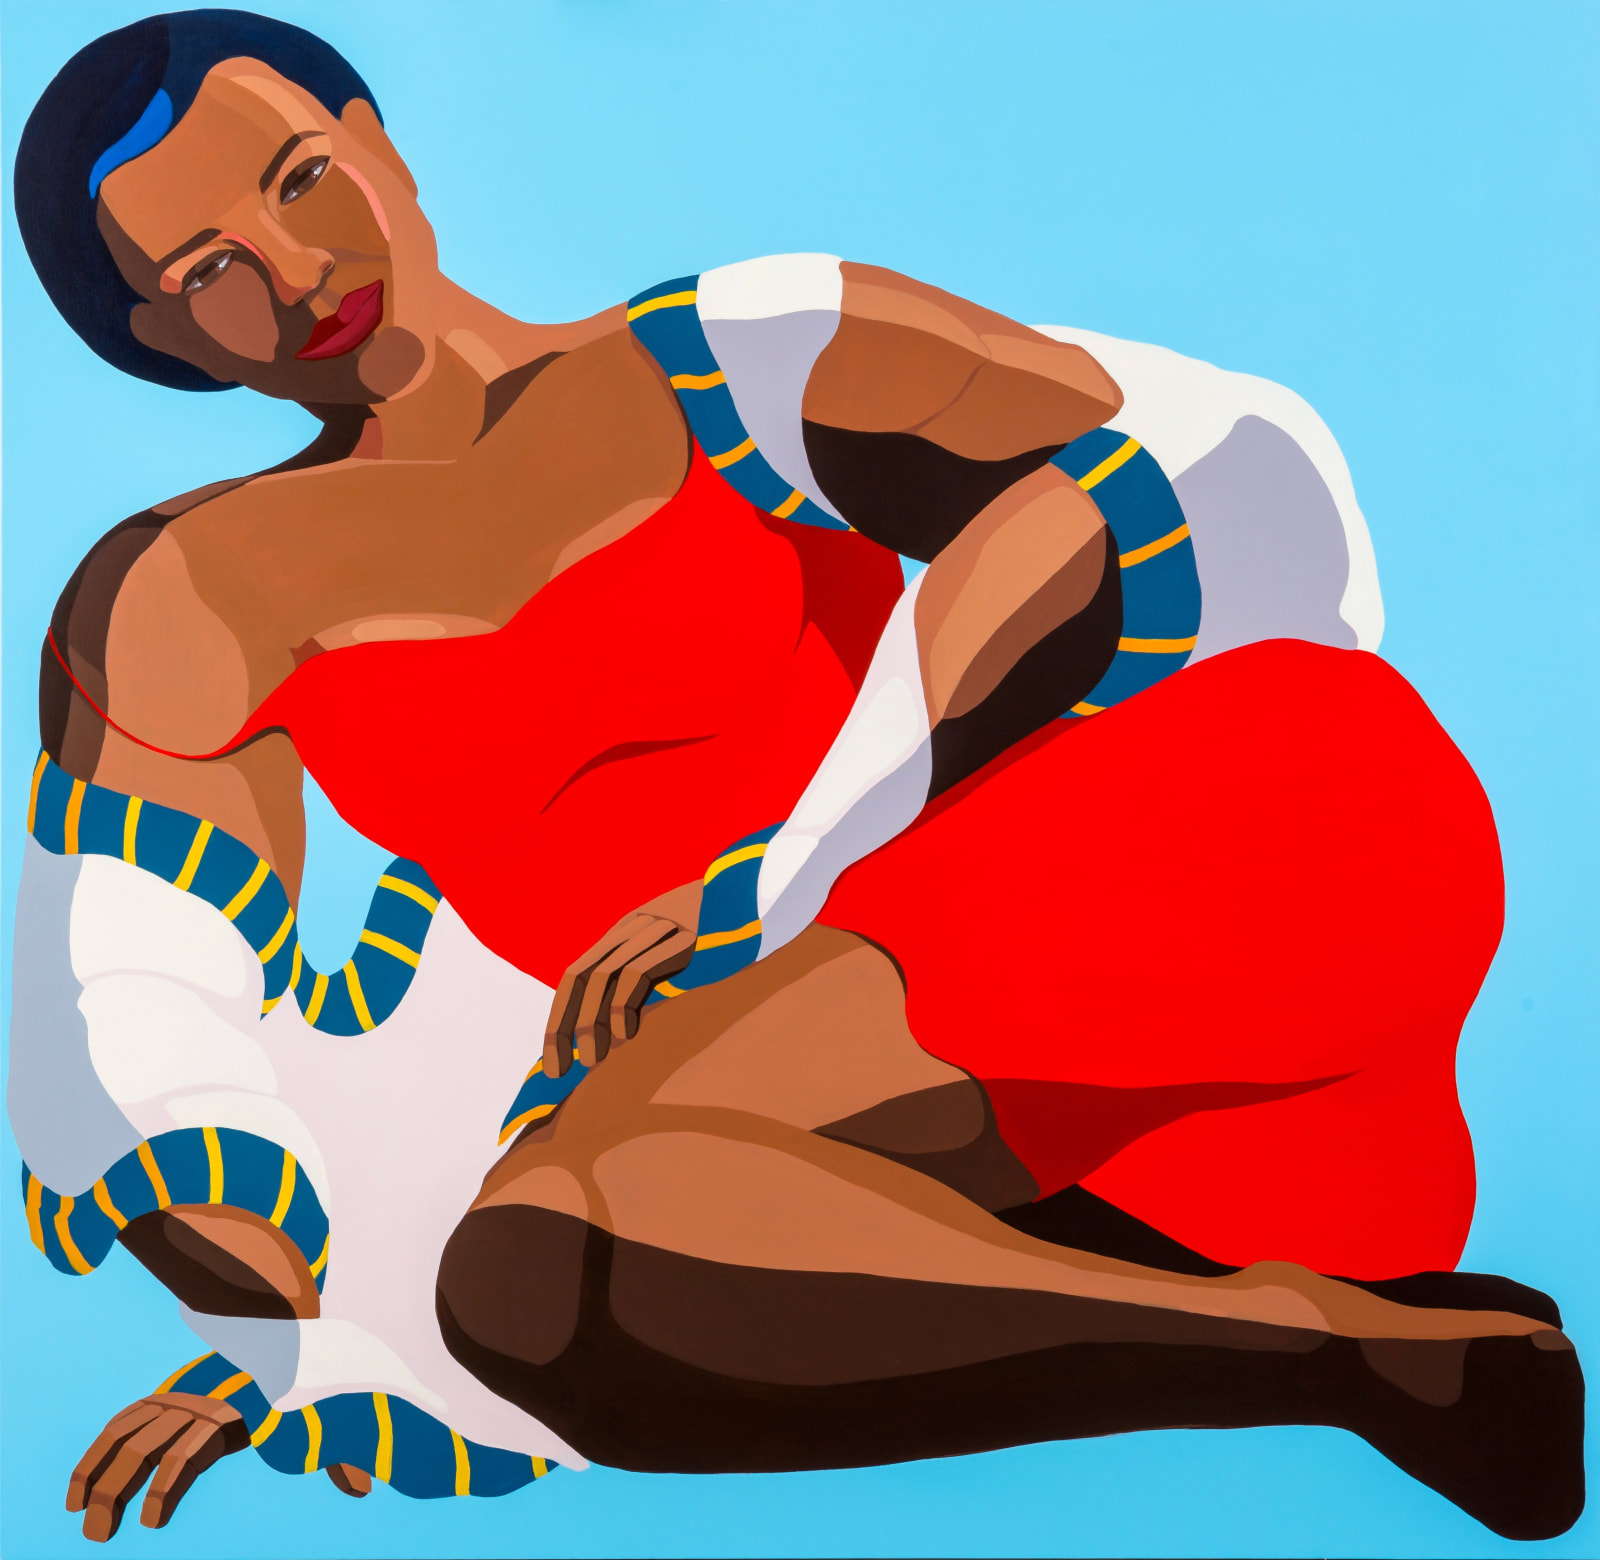 Nirit Takele, Woman in Red Dress, 2019. Courtesy of the Artist and Addis Fine Art